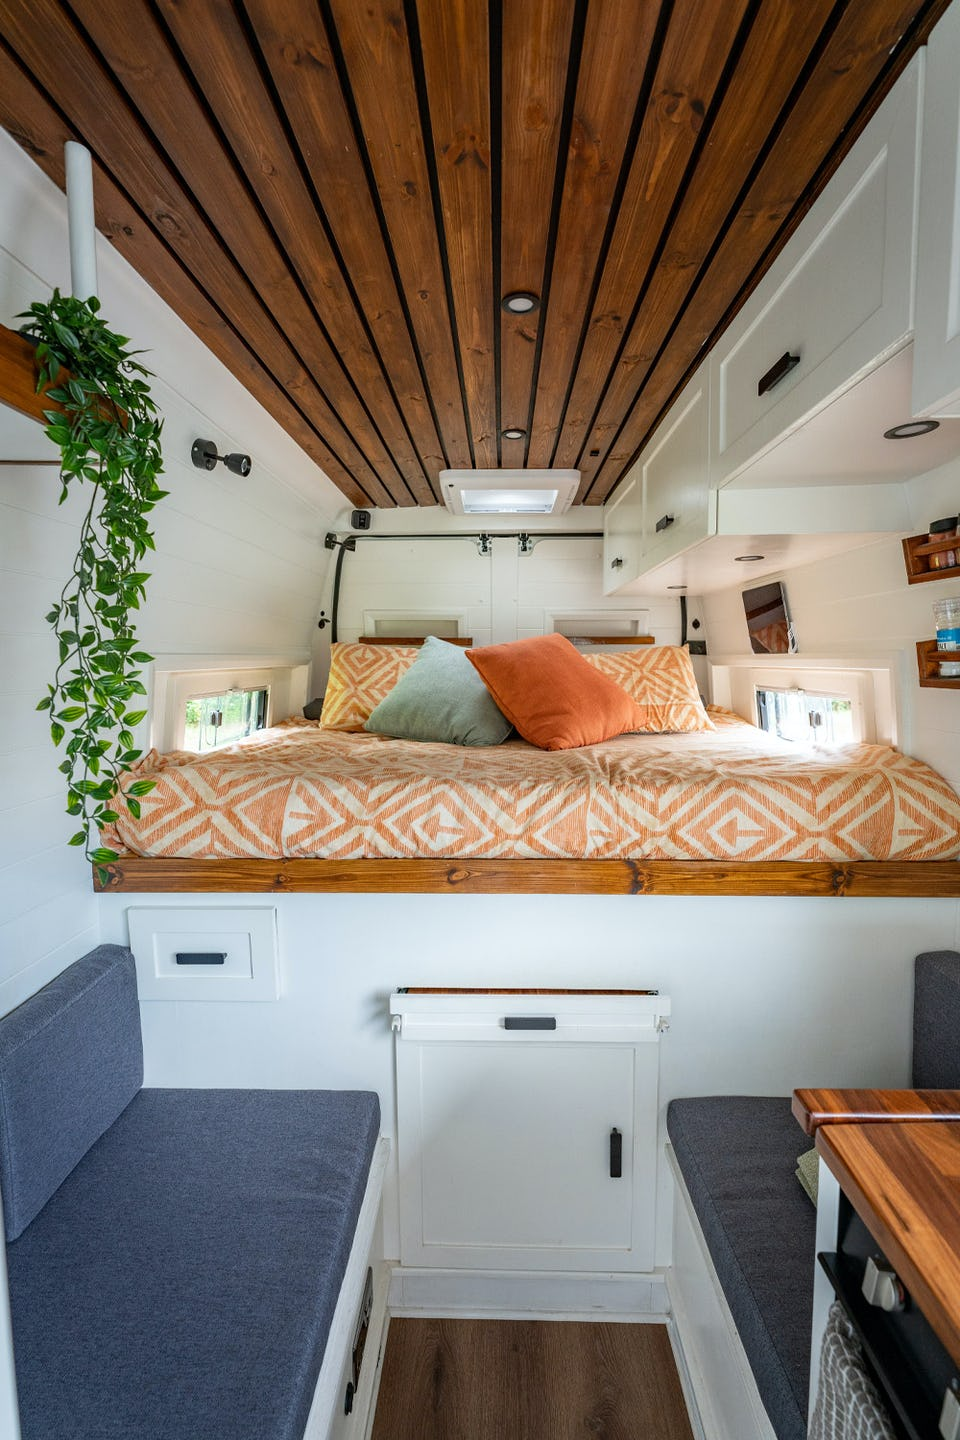 Van conversion with fixed bed